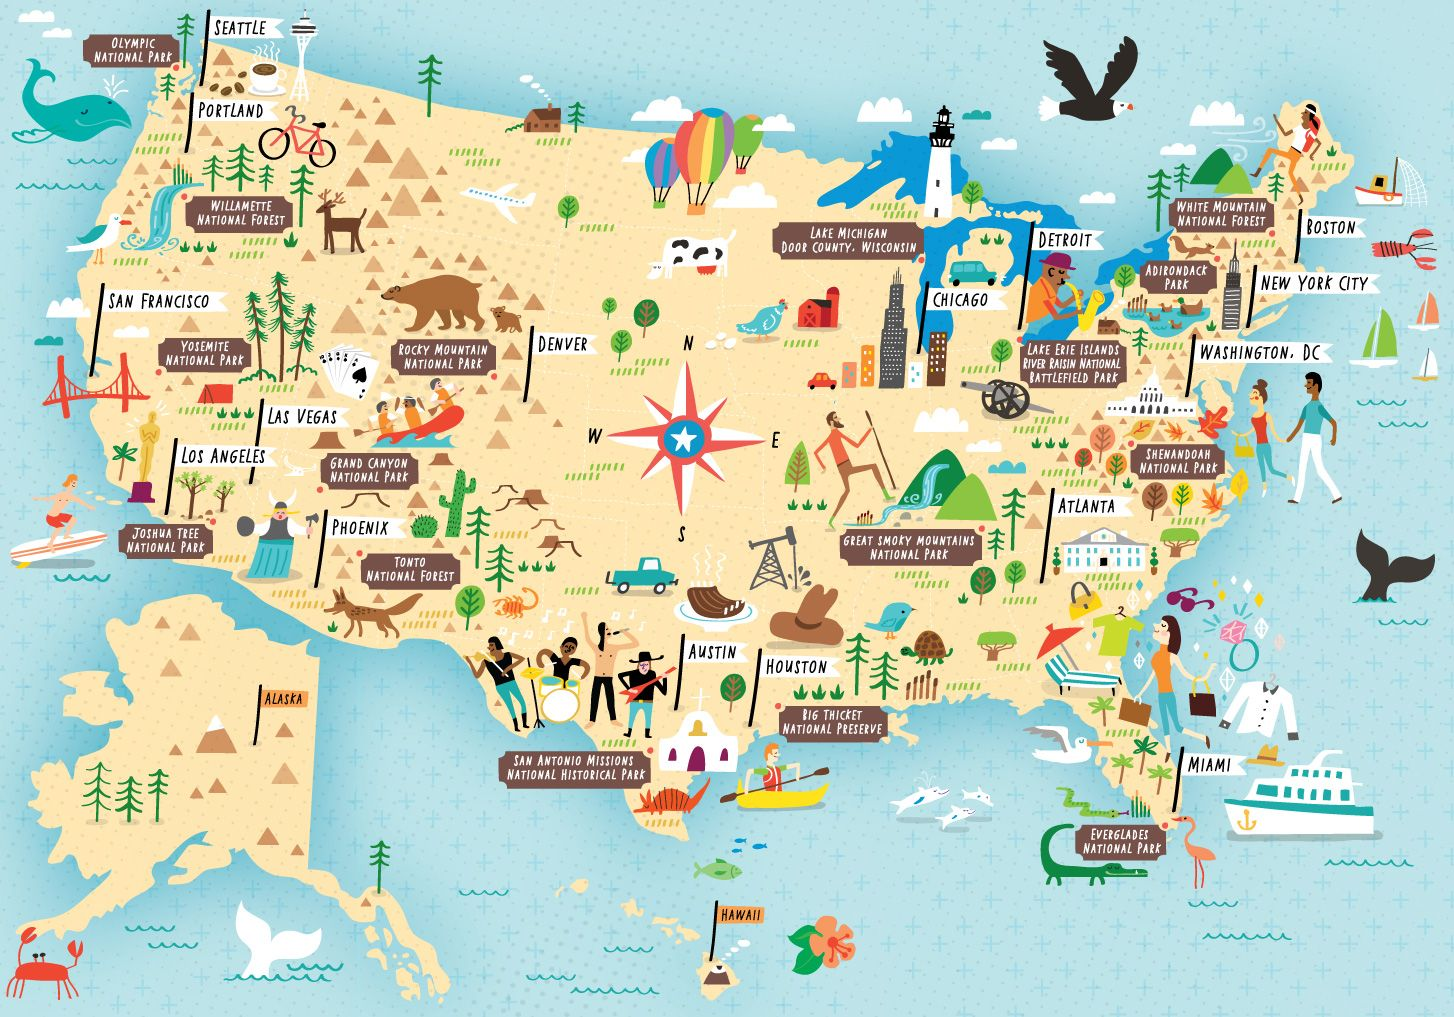 Illustrated map of US National Parks by Nate Padavick maps